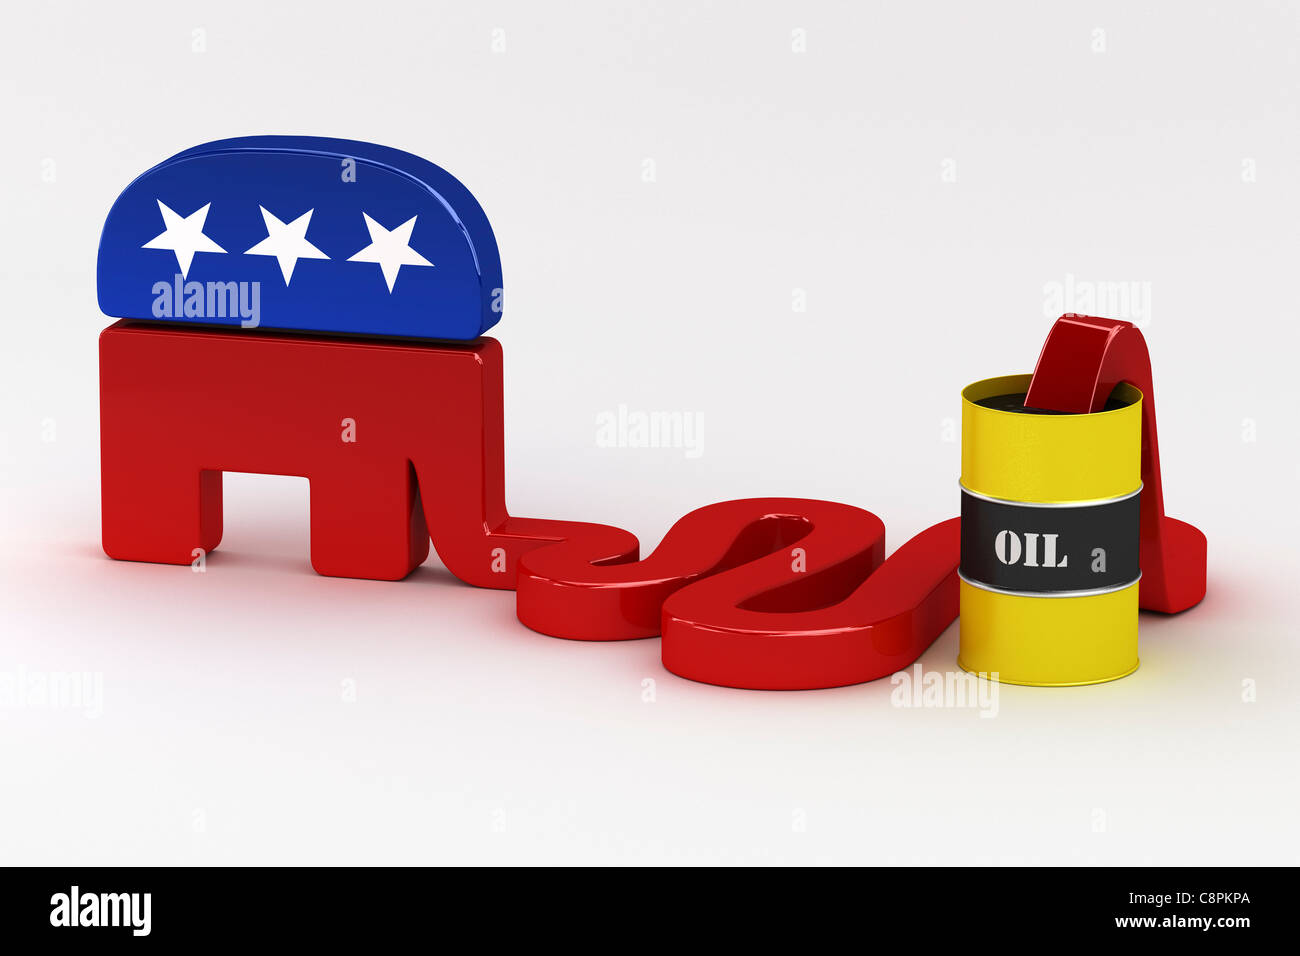 Oil hungry Republicans - Stock Image